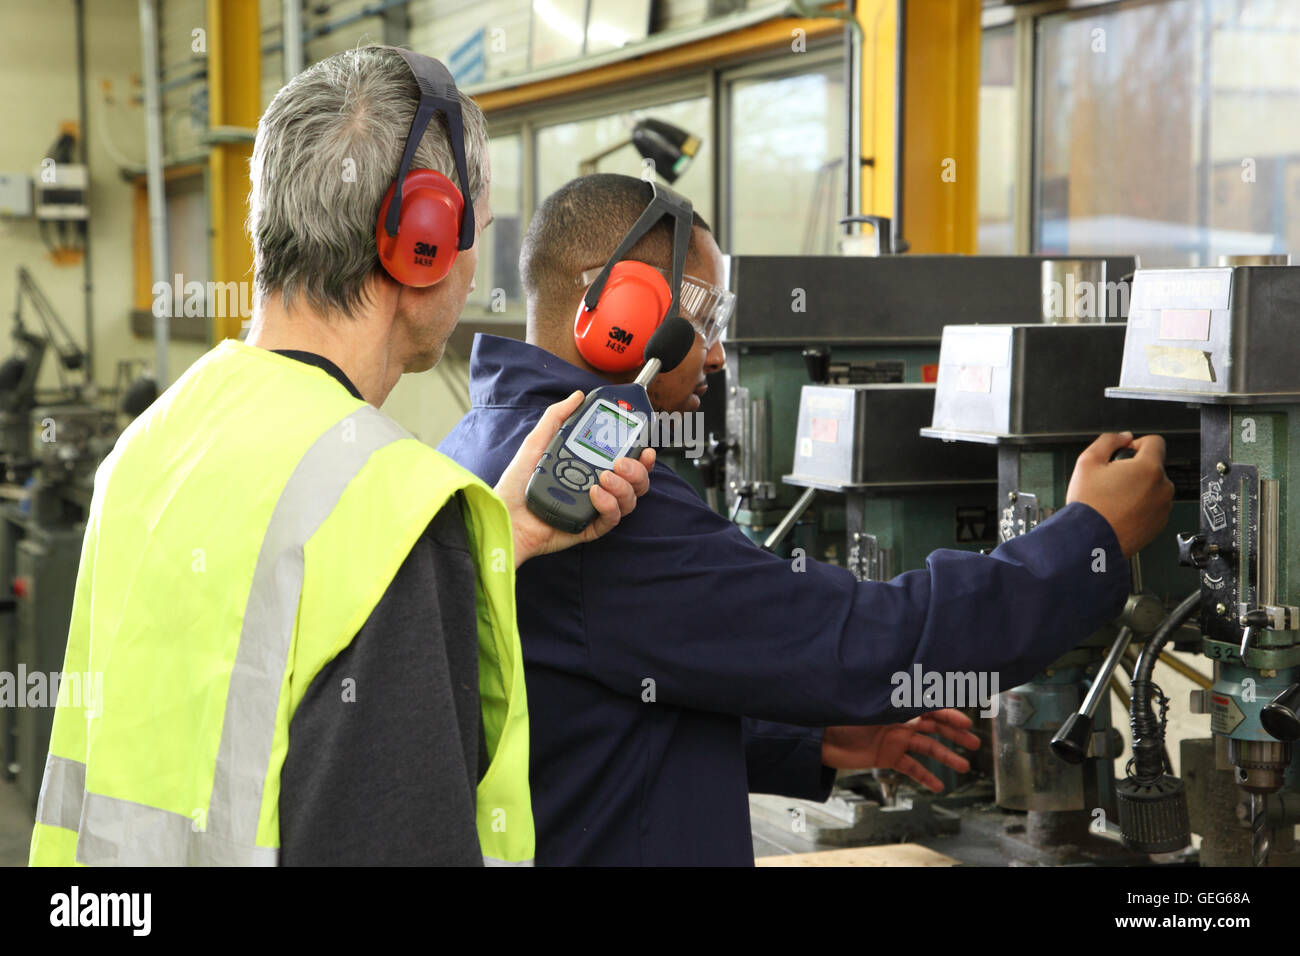 An environmental engineer monitors noise levels next to a drilling machine at a UK manufacturing plant - Stock Image